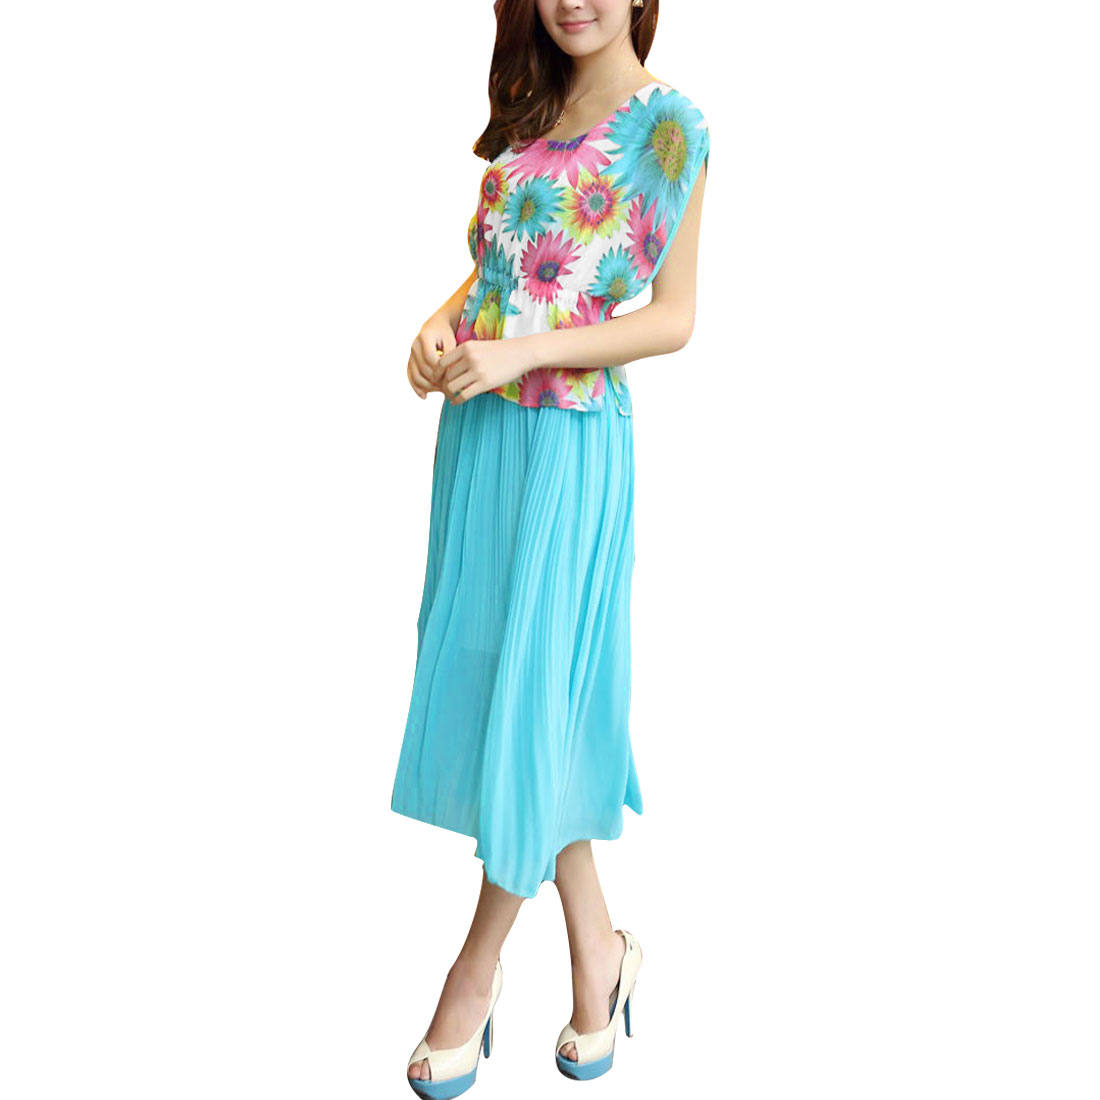 8203 Lady Blue Round Neck Flower Design Layered Design Dress XS